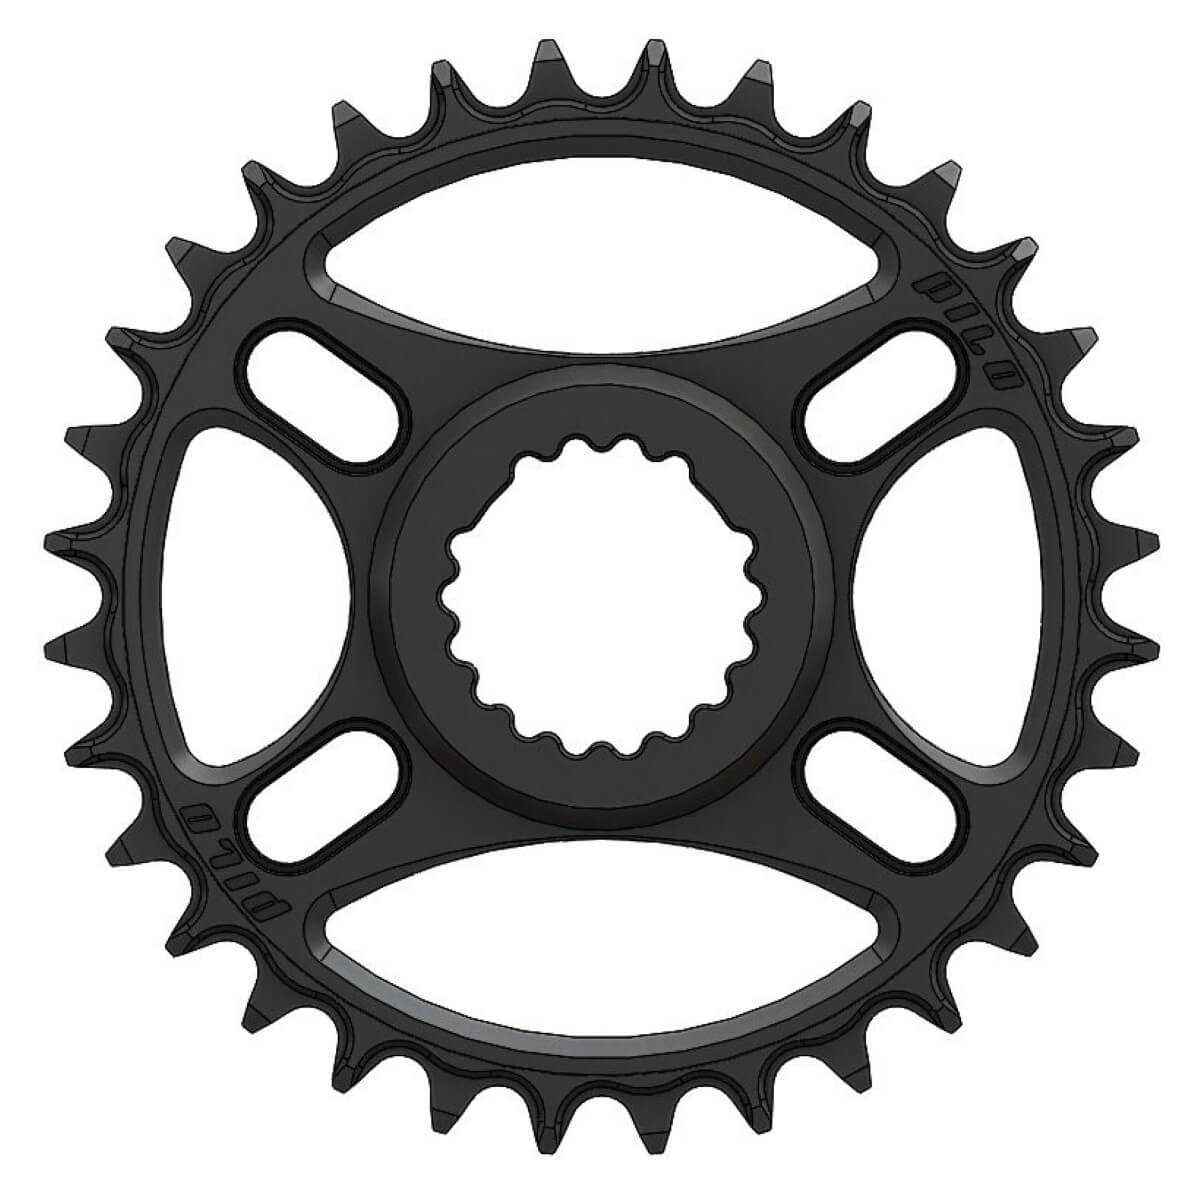 Pilo C65 Chainring Narrow Wide 32T for Cannondale, FSA direct mount